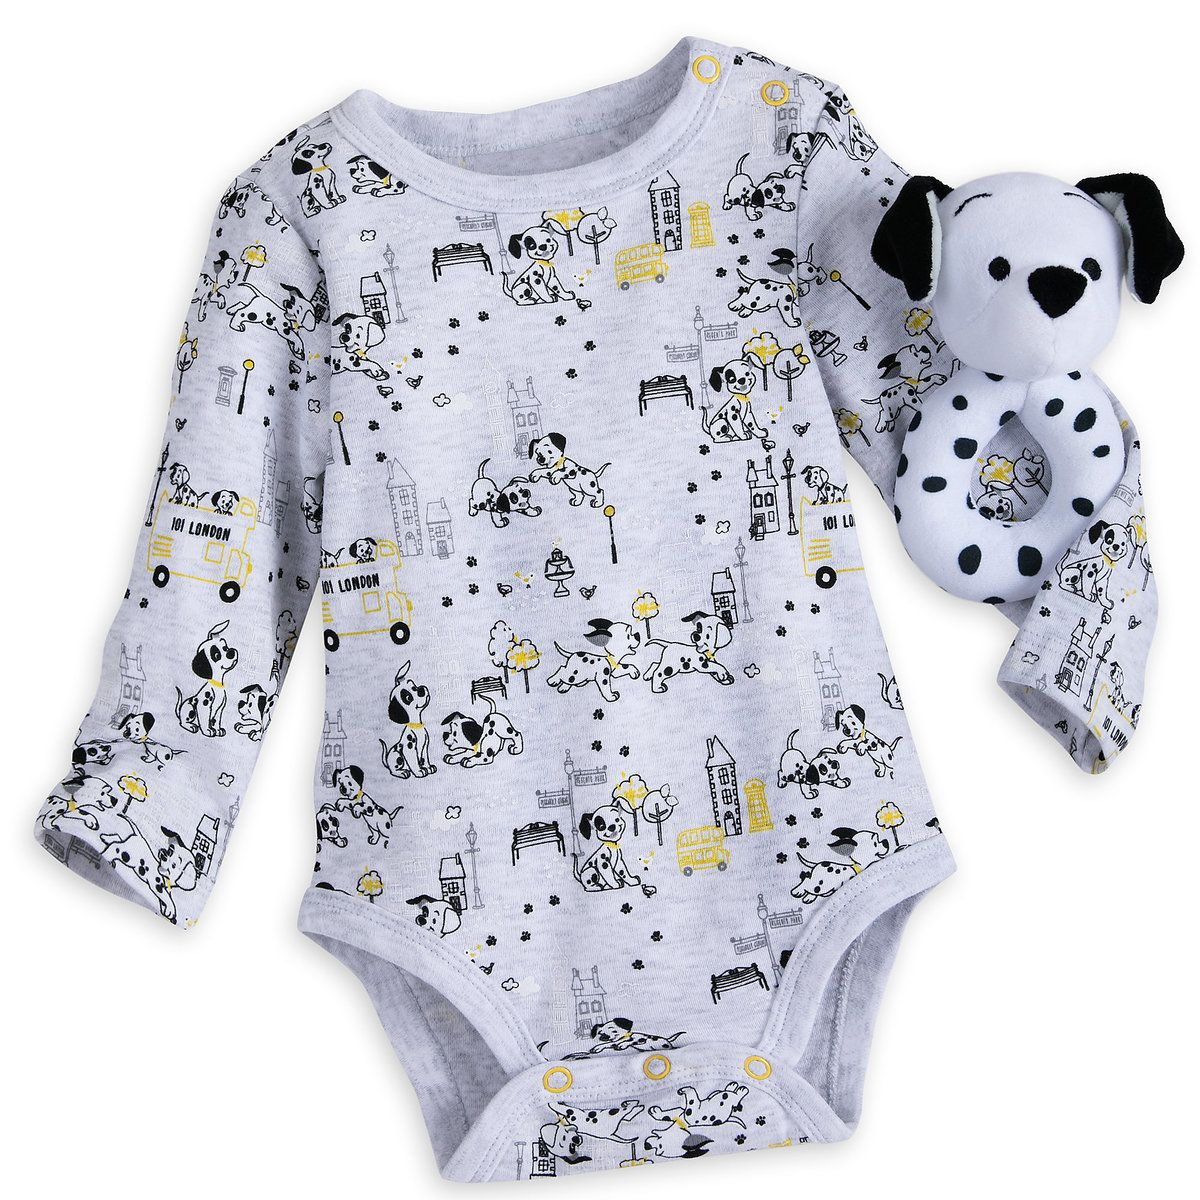 101 Dalmatians Gift Set For Baby Disney Baby Clothes Kids Disney Outfits Baby Boy Disney